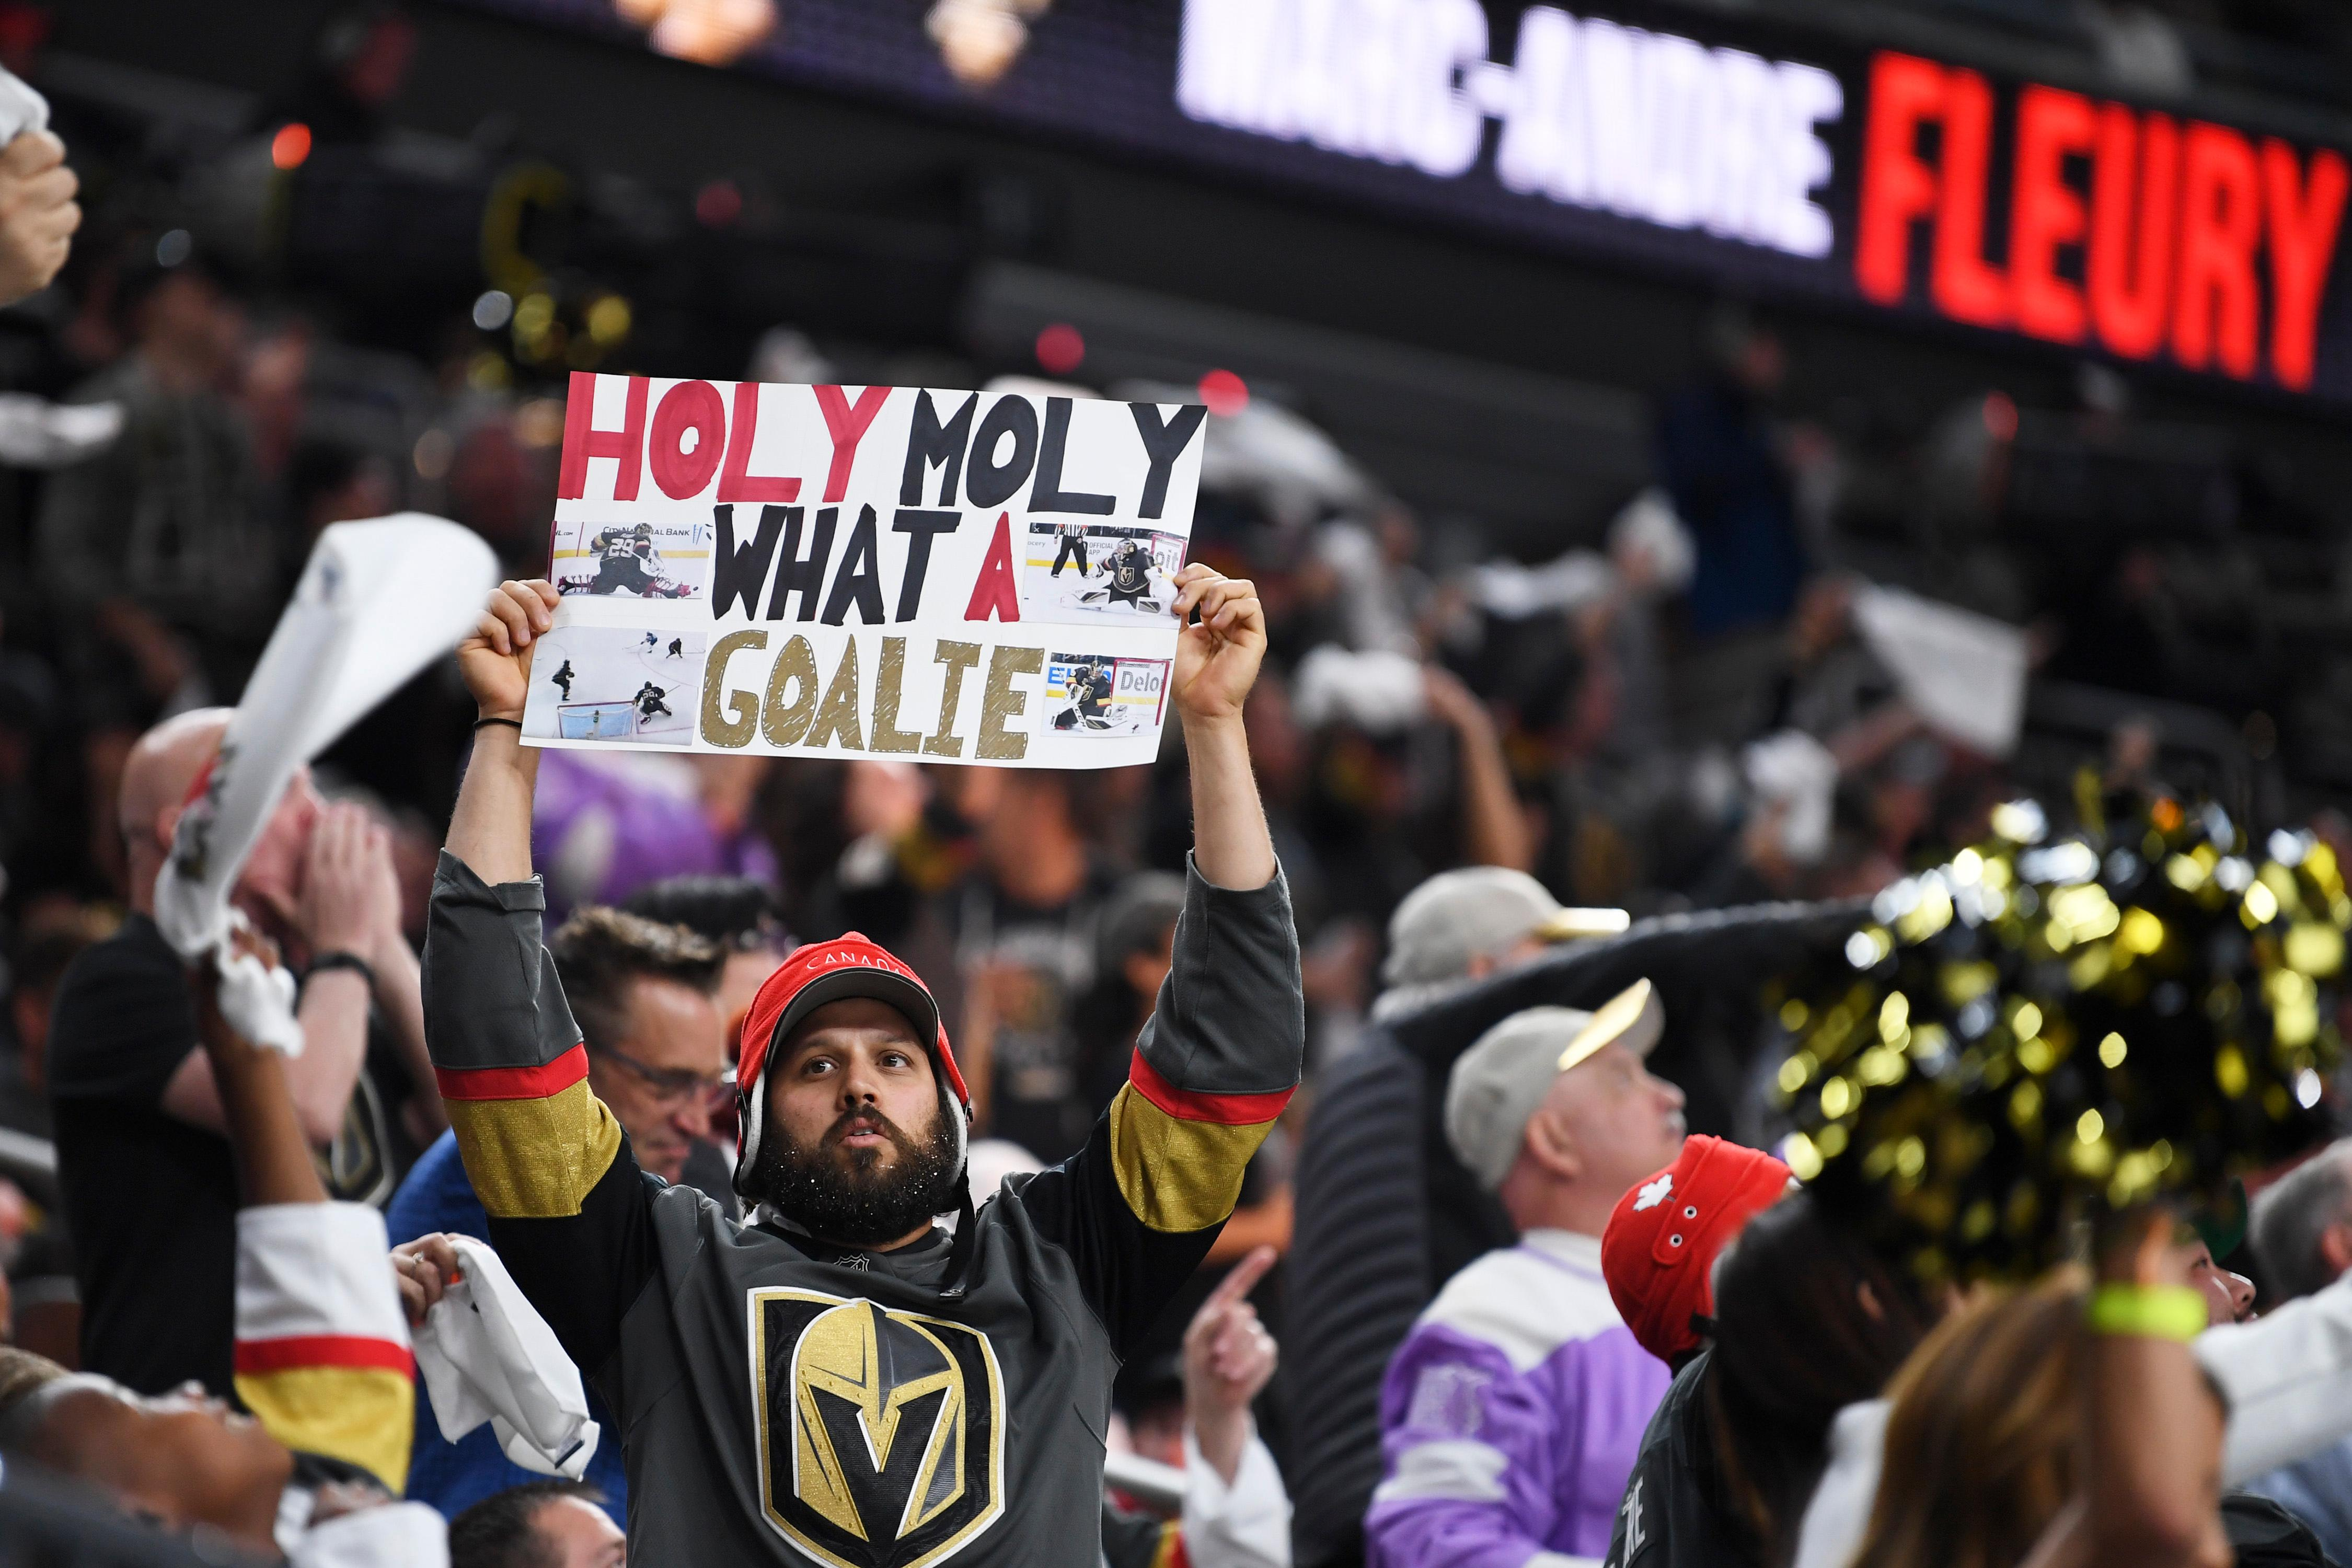 A Vegas Golden Knights fan holds up a poster after Golden Knights goaltender Marc-Andre Fleury made another stop during Game 4 of their NHL hockey Western Conference Final game against the Winnipeg Jets Friday, May 18, 2018, at T-Mobile Arena. CREDIT: Sam Morris/Las Vegas News Bureau